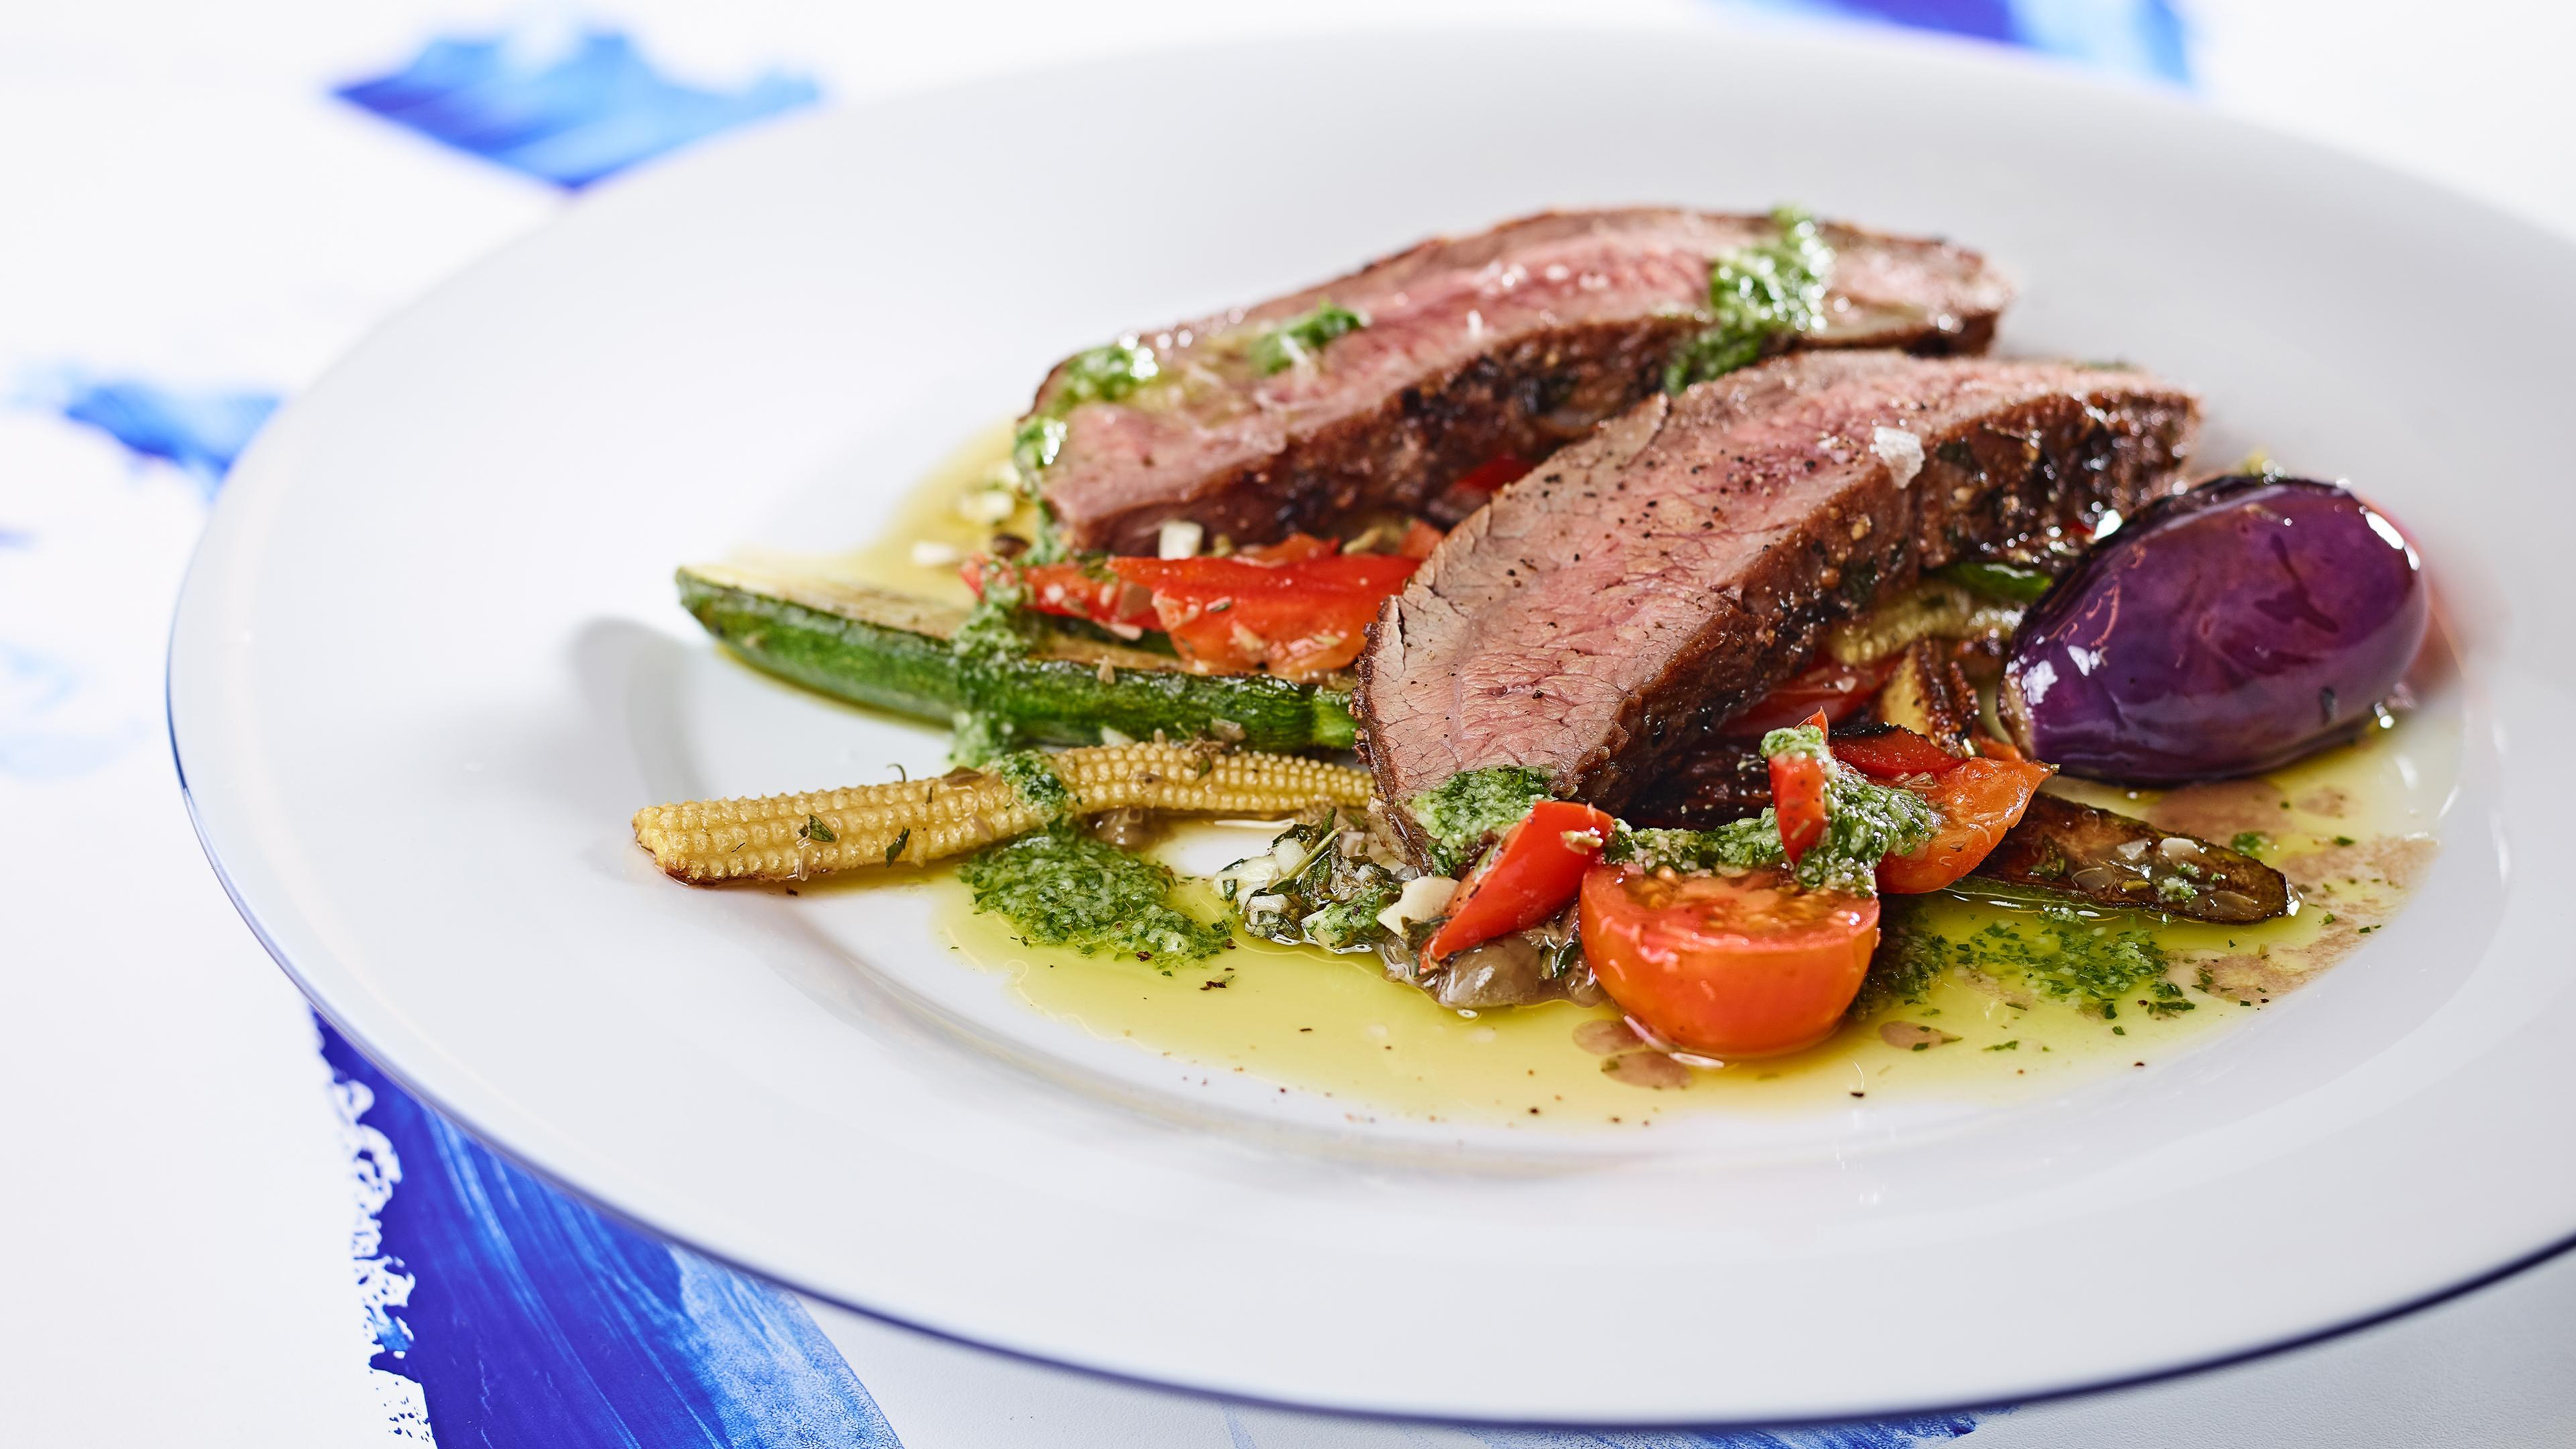 Grilled vegetables with flank steak and pesto